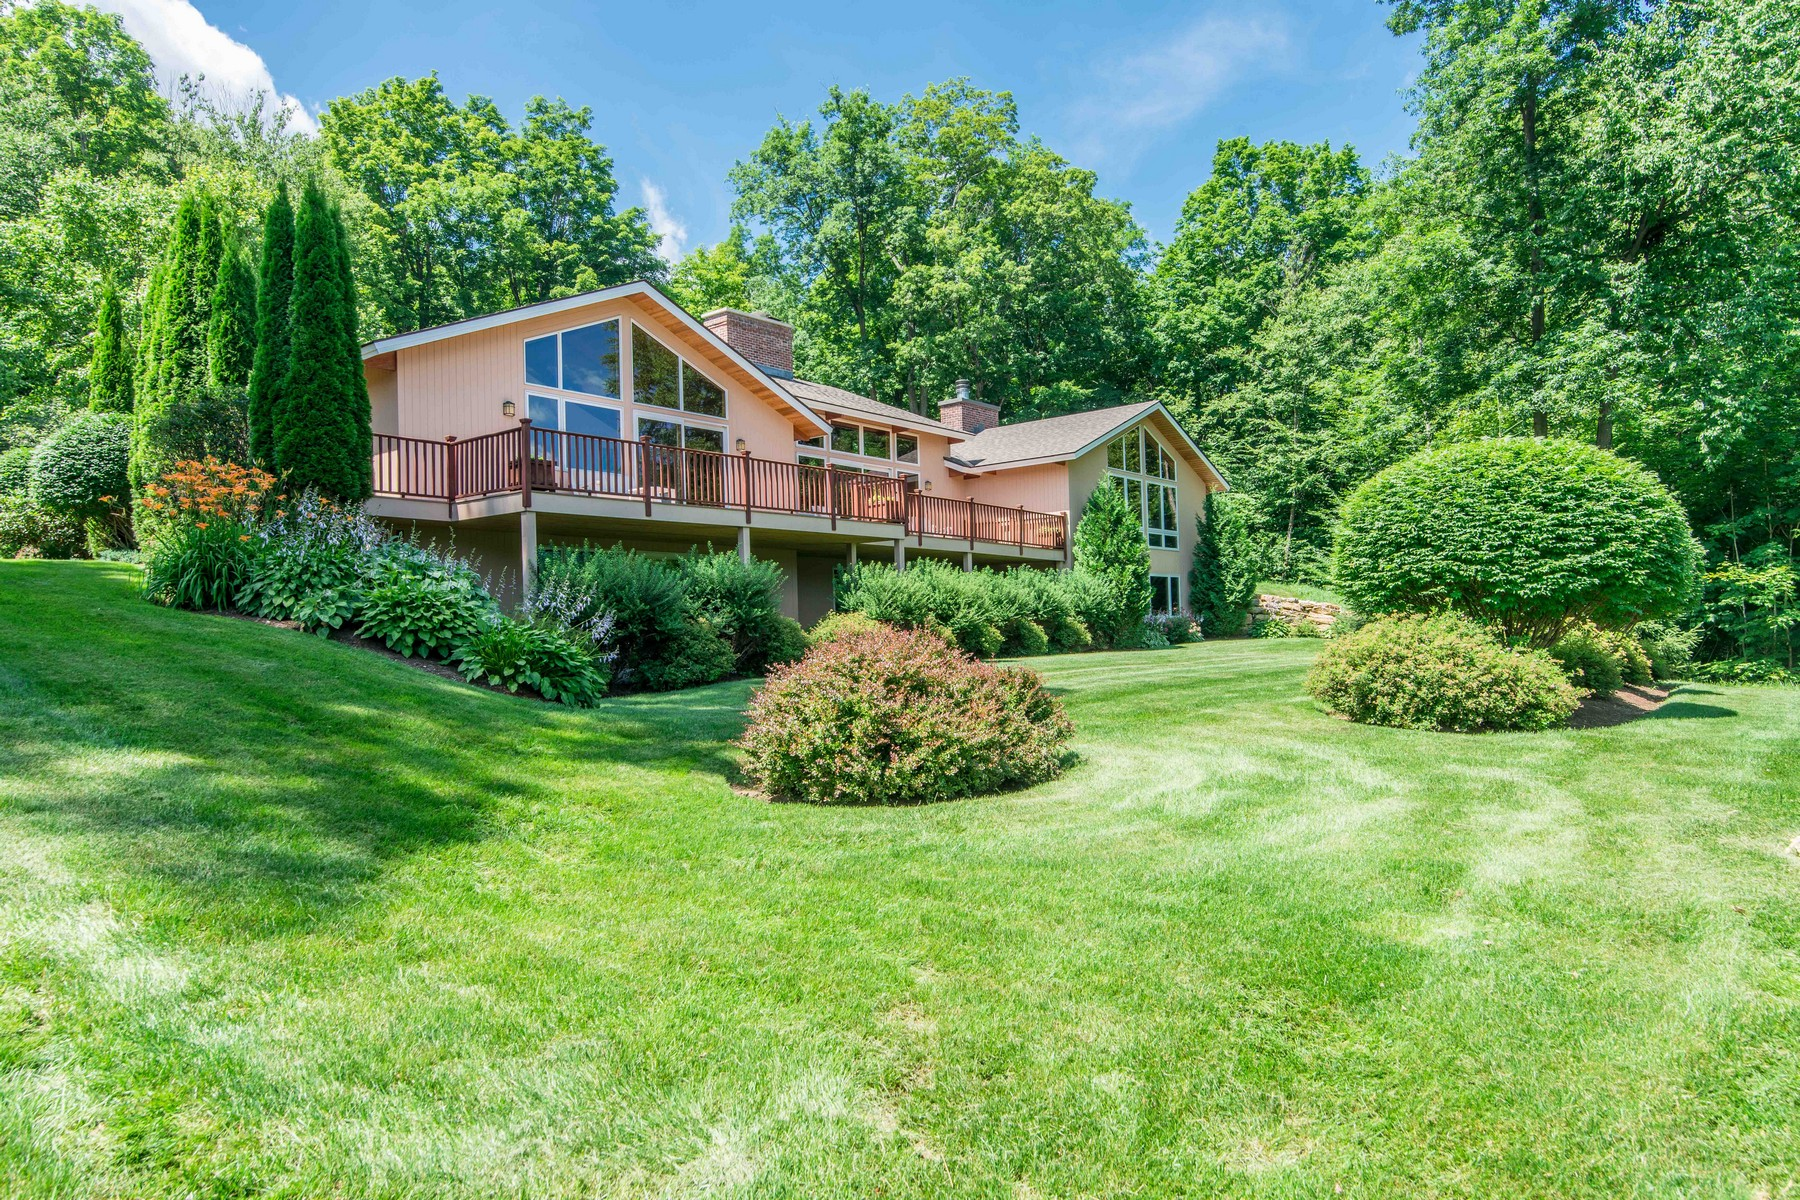 Single Family Home for Sale at Immaculate Contemporary With Views 815 Sleighbell Ln Dorset, Vermont, 05251 United States